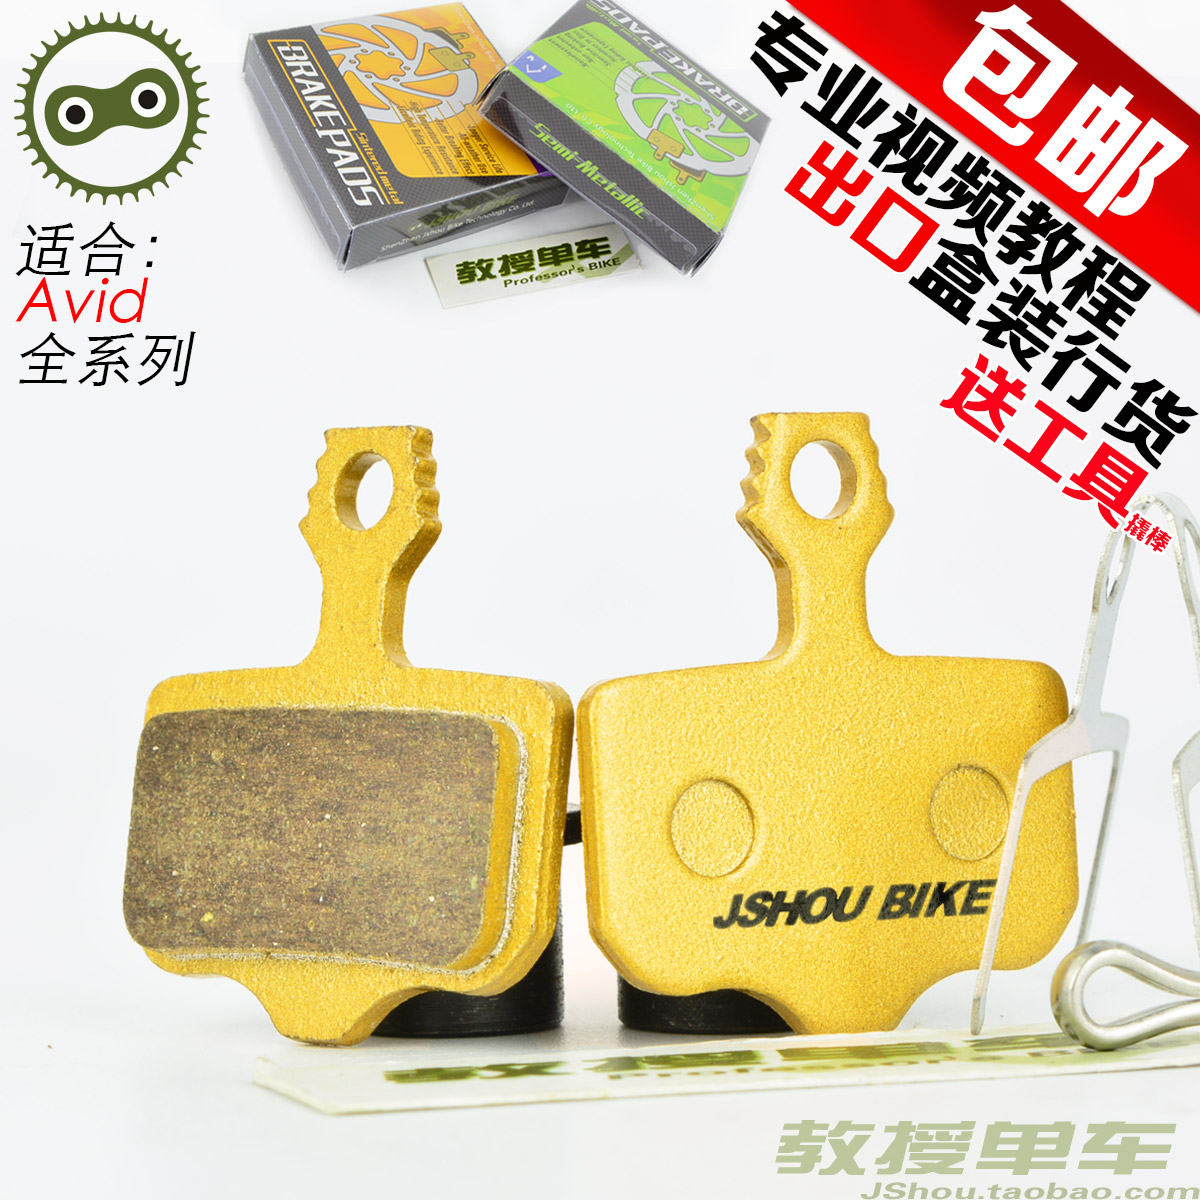 DB1 Oil Disk to Make Plate Metal Suitable for Avid E1E3E5E7E9XX Xo Mountain Bike Disc Brake to Make Plate Metal